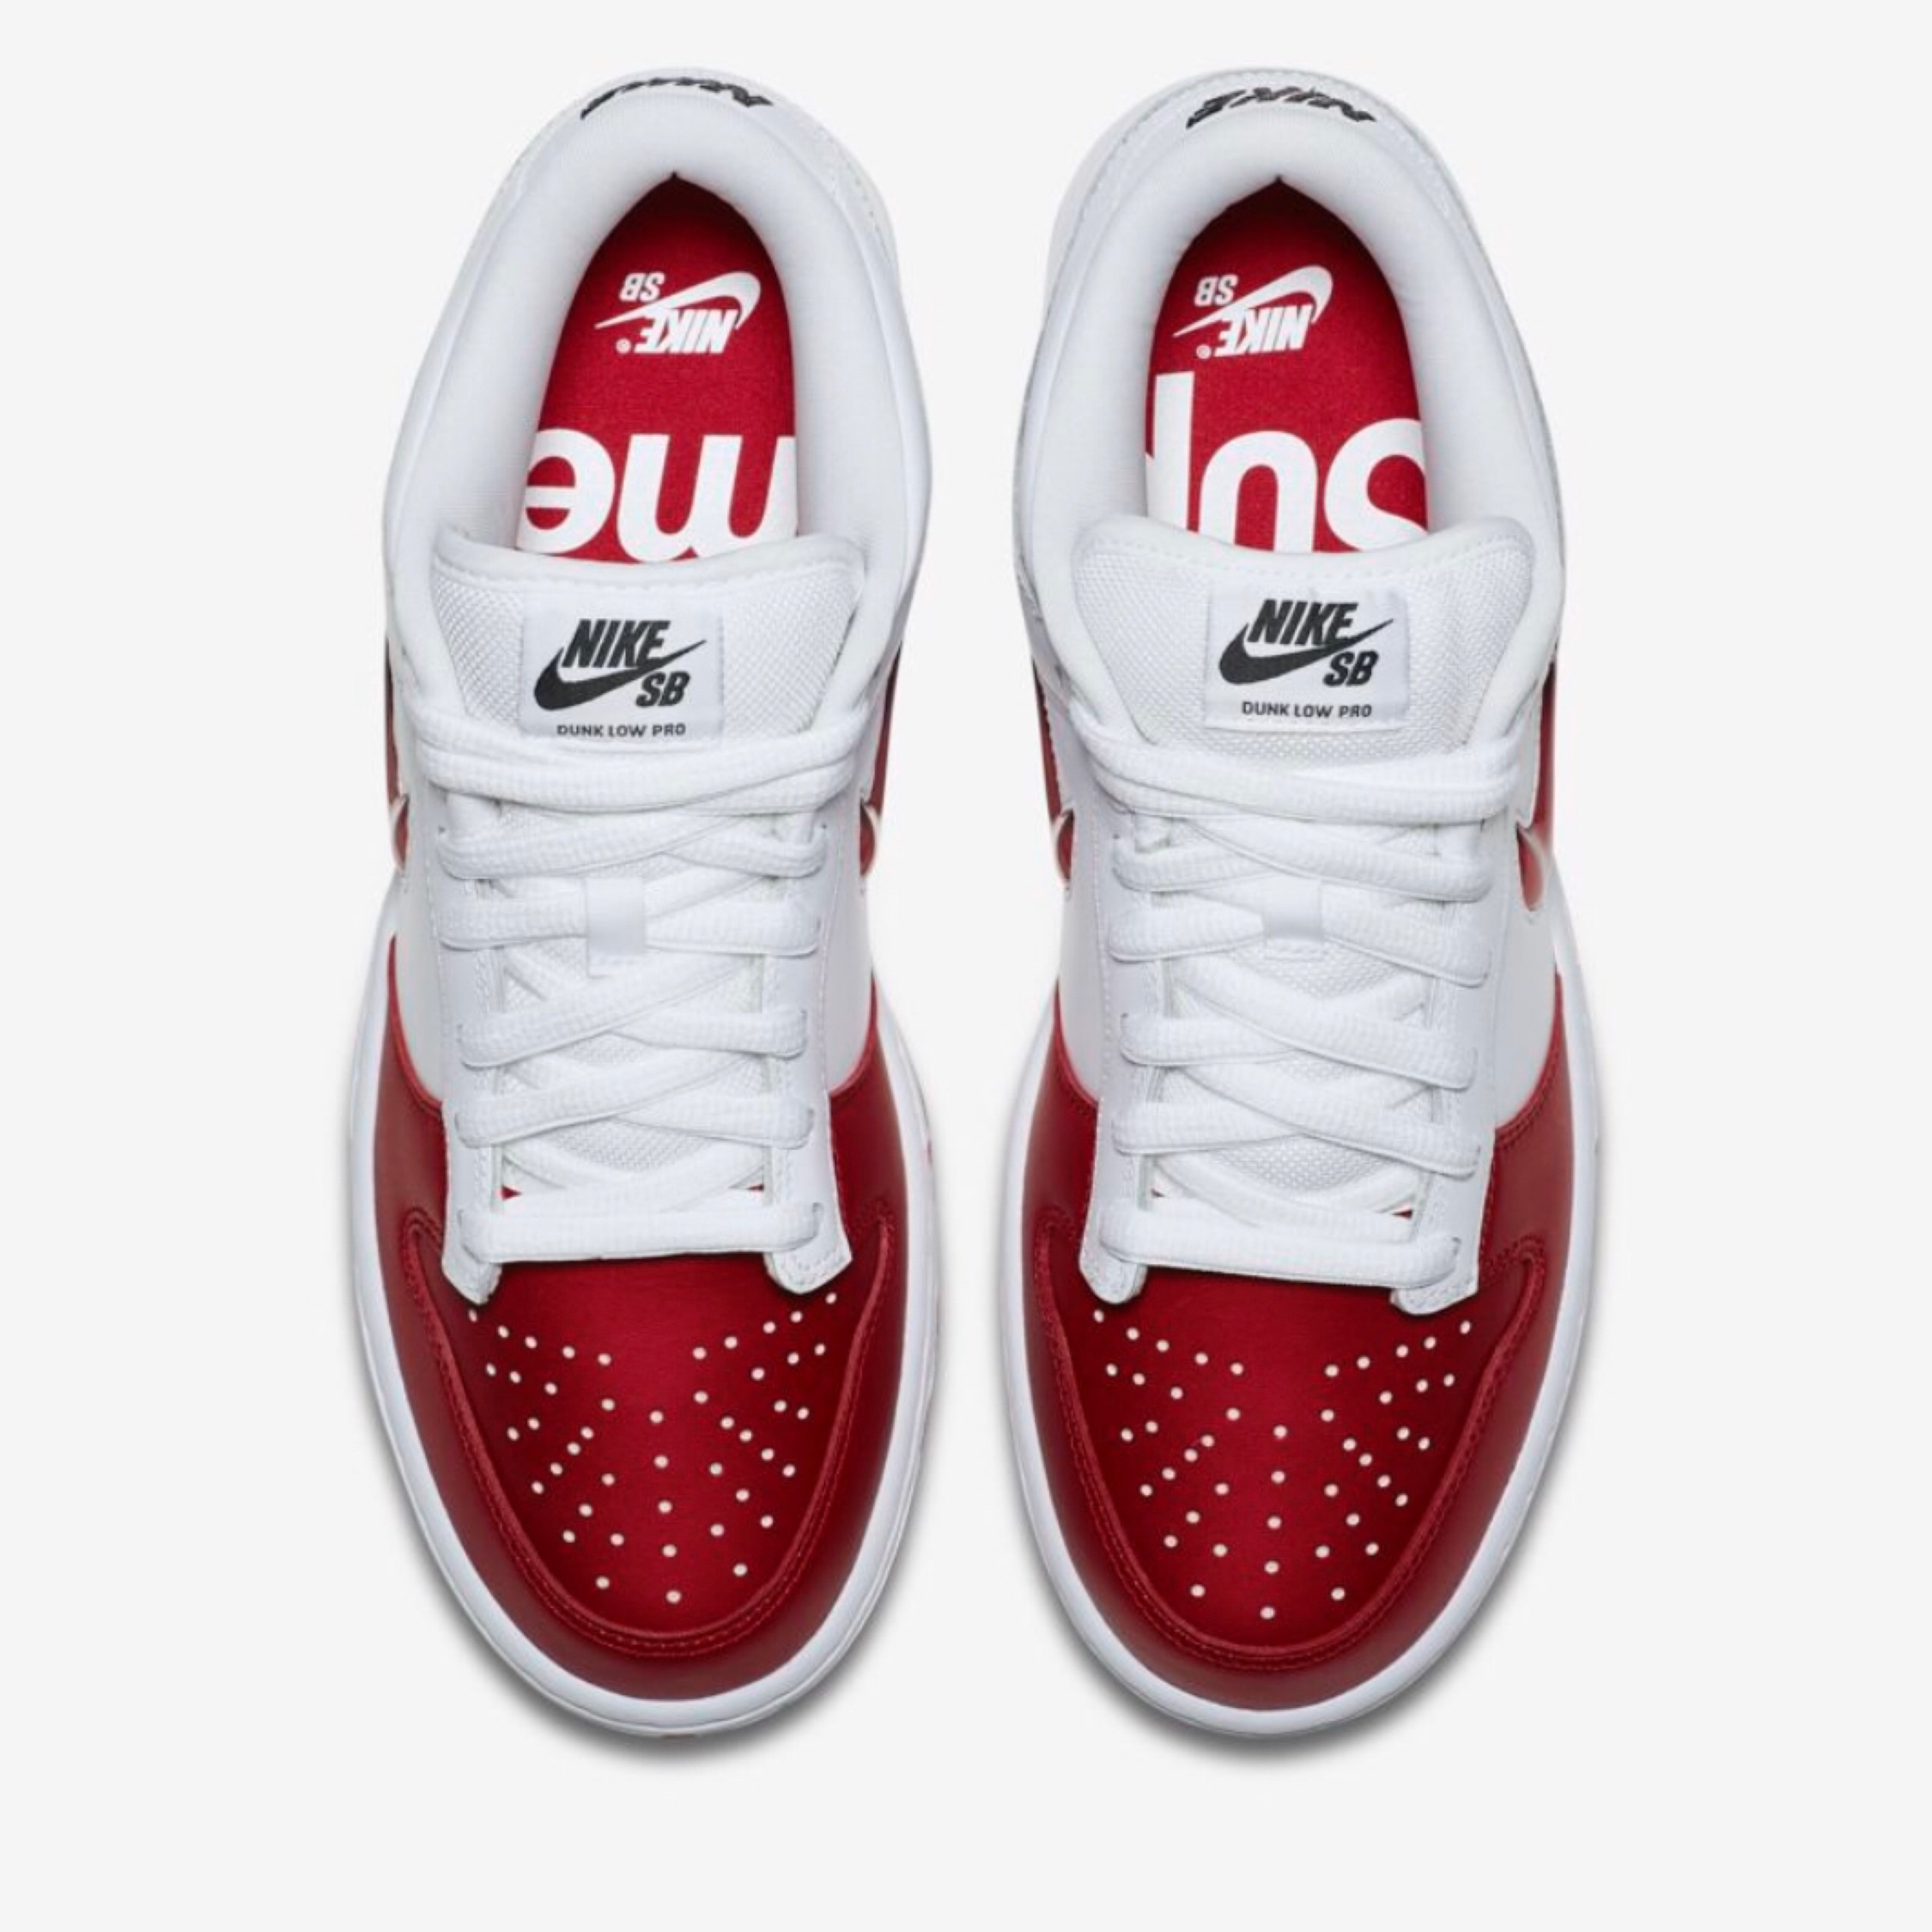 Supreme Sb Dunks